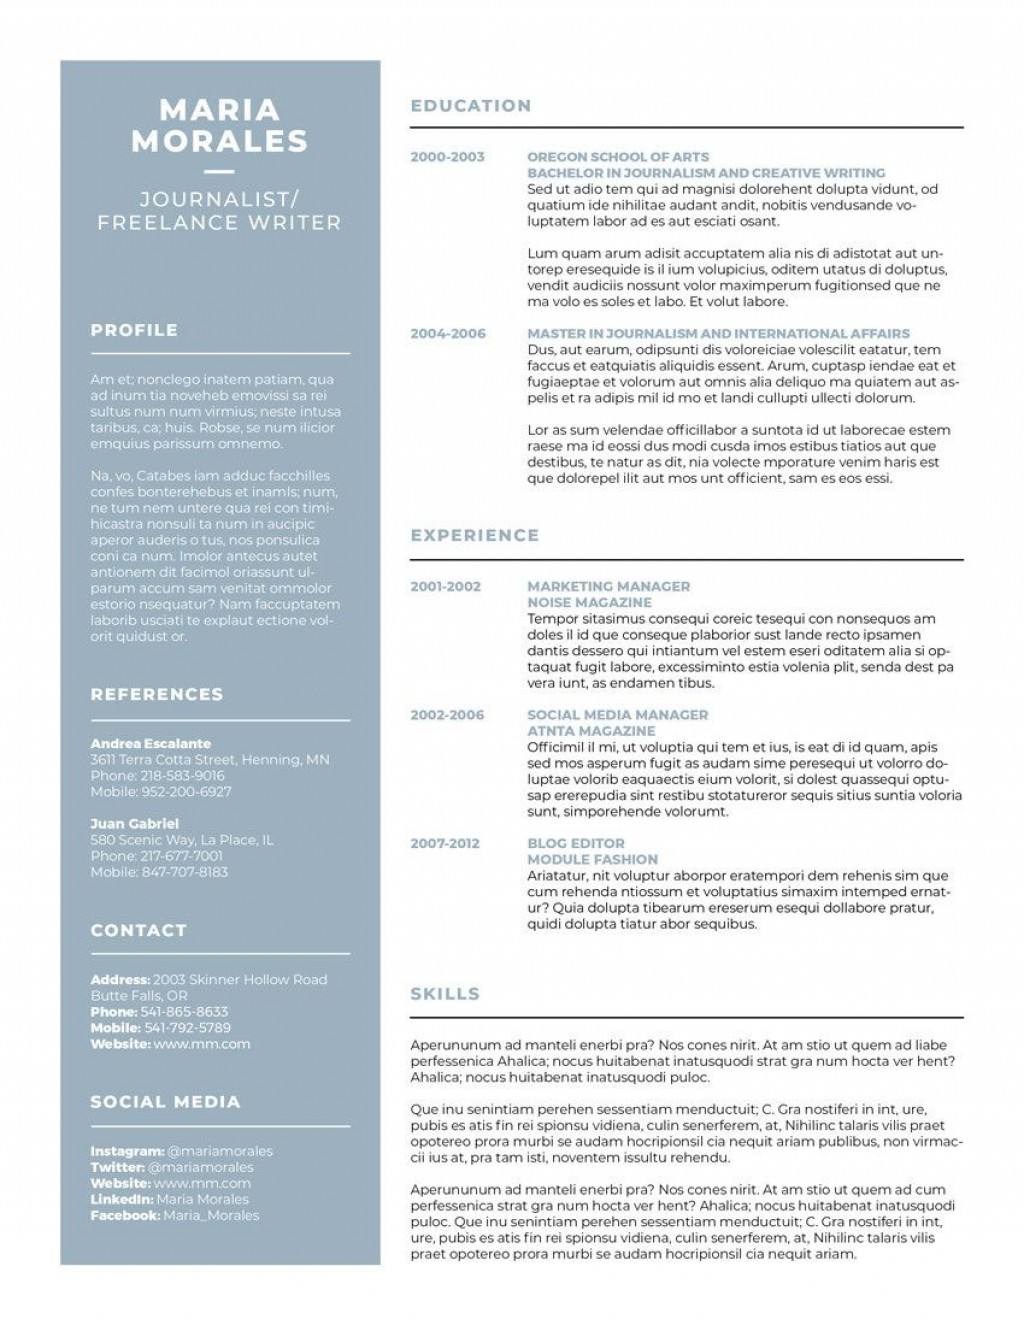 008 Awful Make A Resume Template Free High Resolution  How To Write Create Format WritingLarge